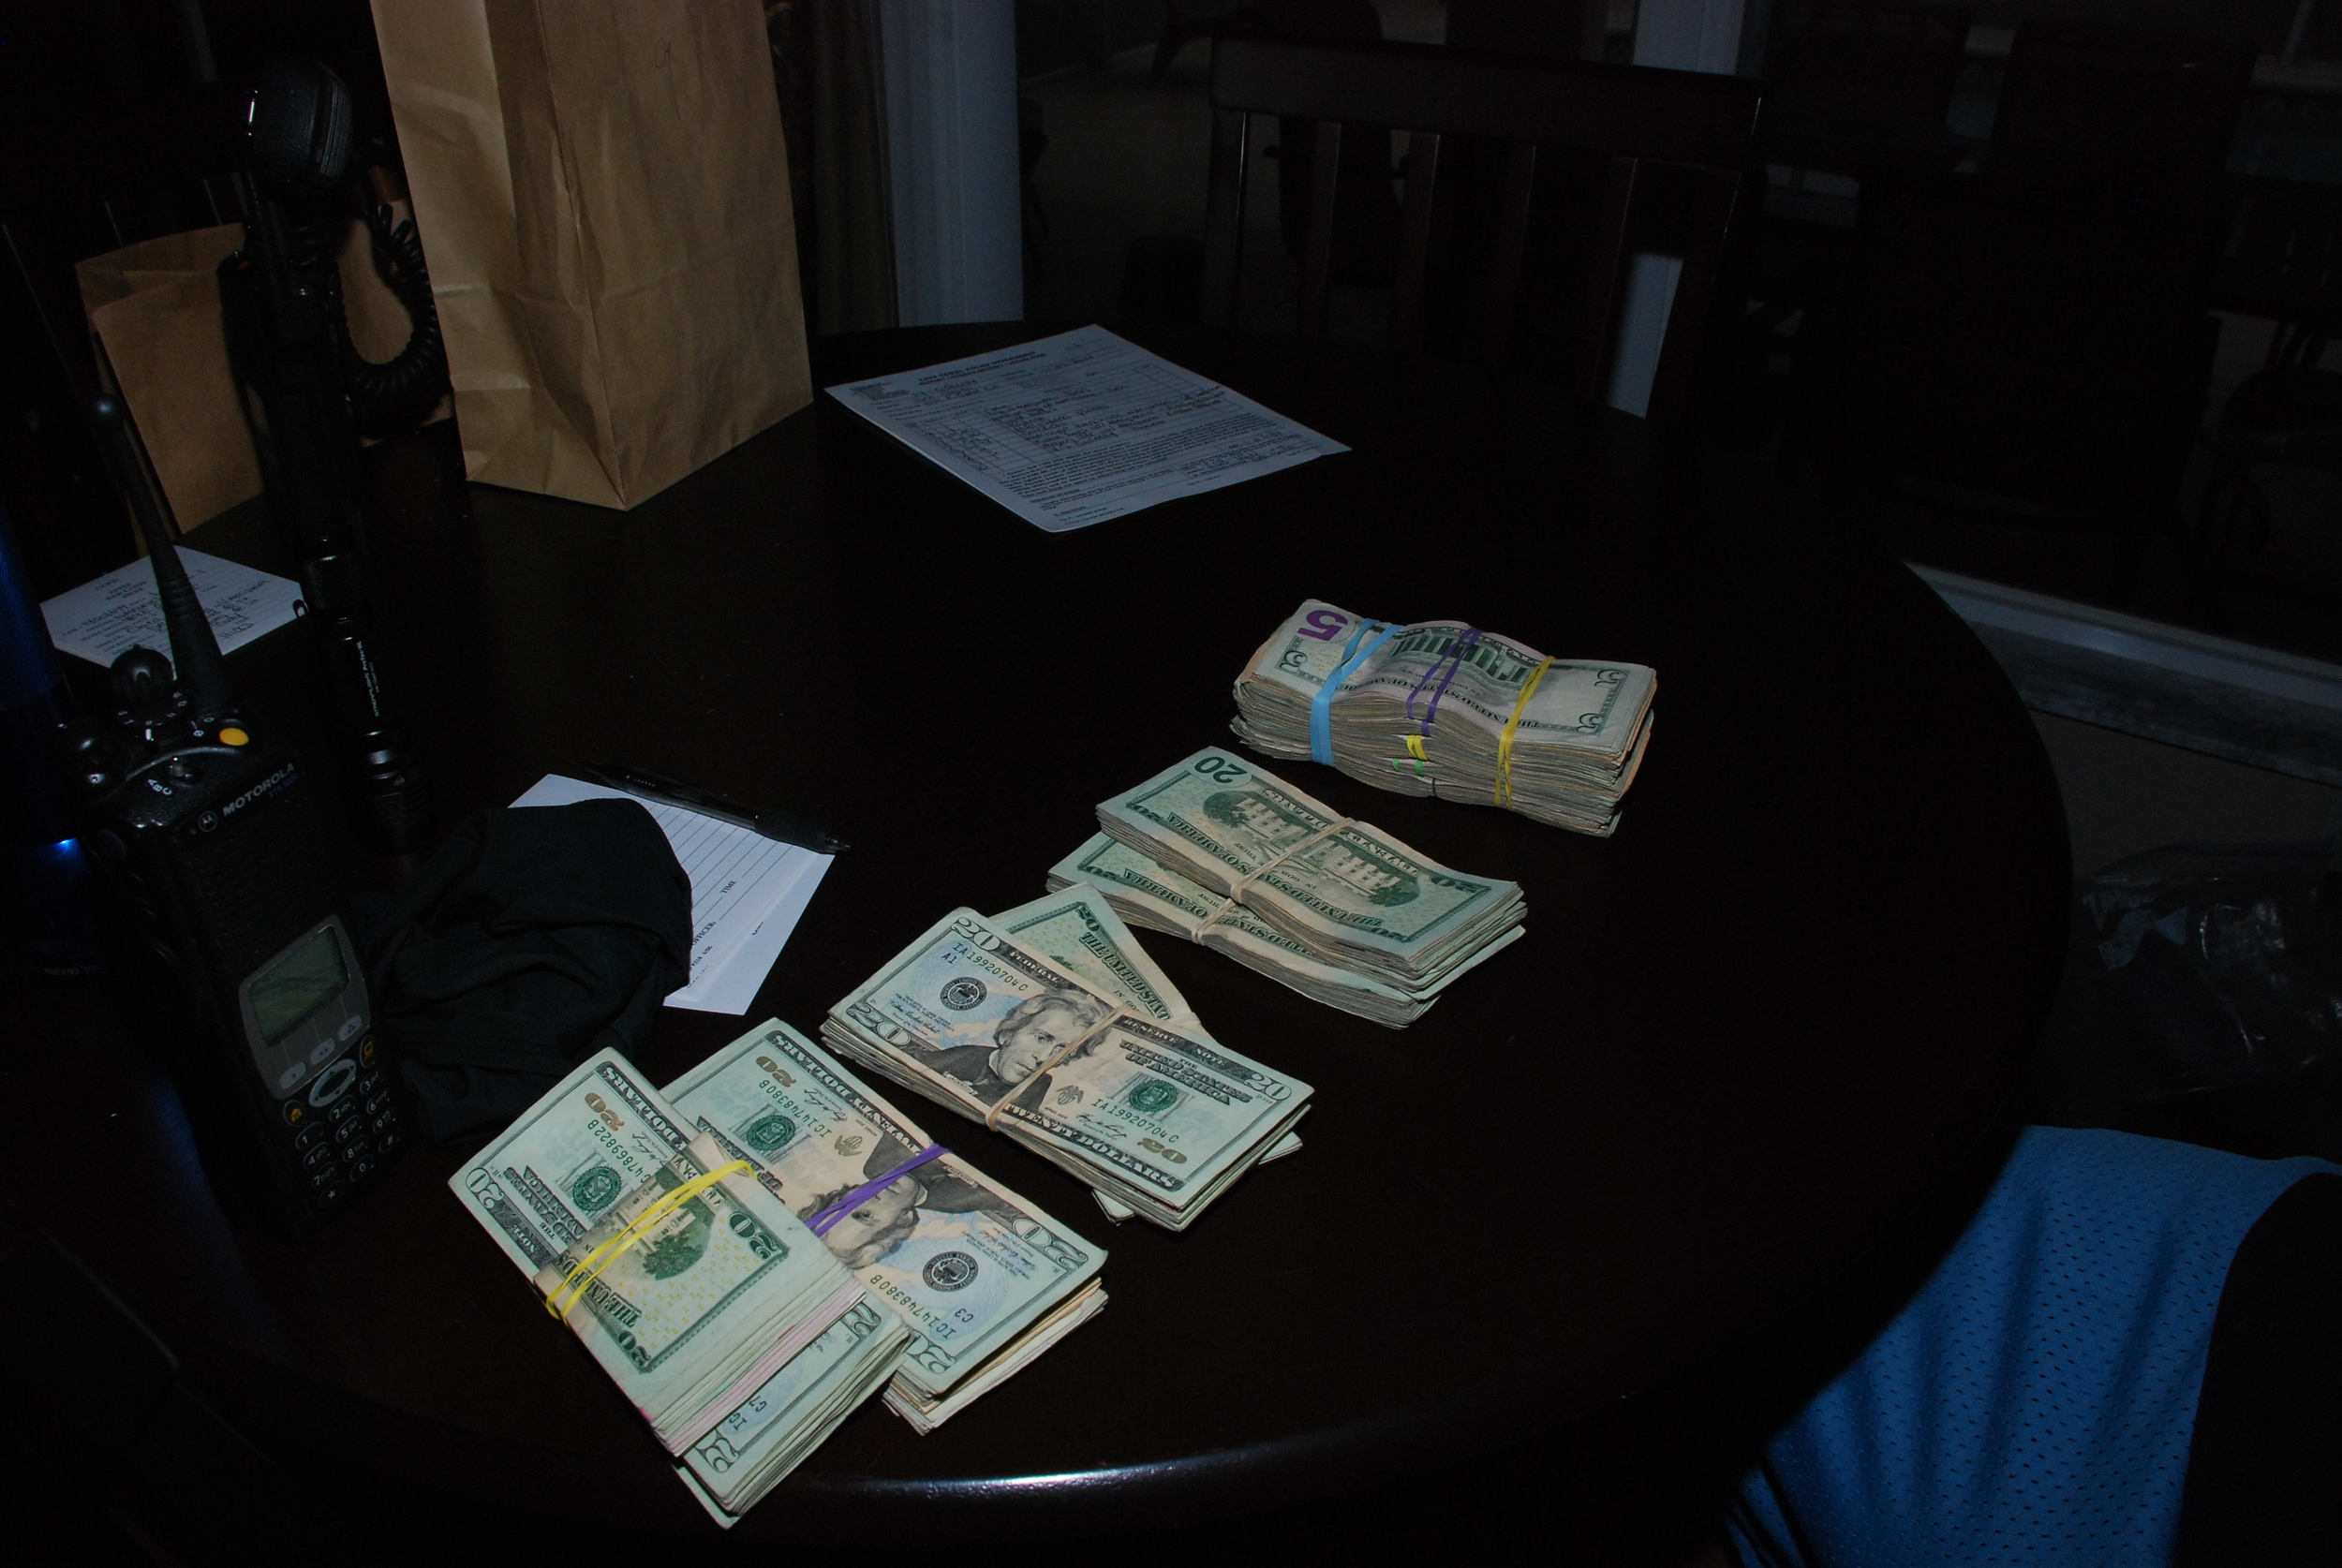 PHOTO: Photos taken from the search warrant service at 4114 East Gator Circle, Cape Coral. A marijuana grow house was dismantled and 57 pounds of marijuana and $13,000 in cash wereseized. (Photo Courtesy ofCape Coral Police Department)